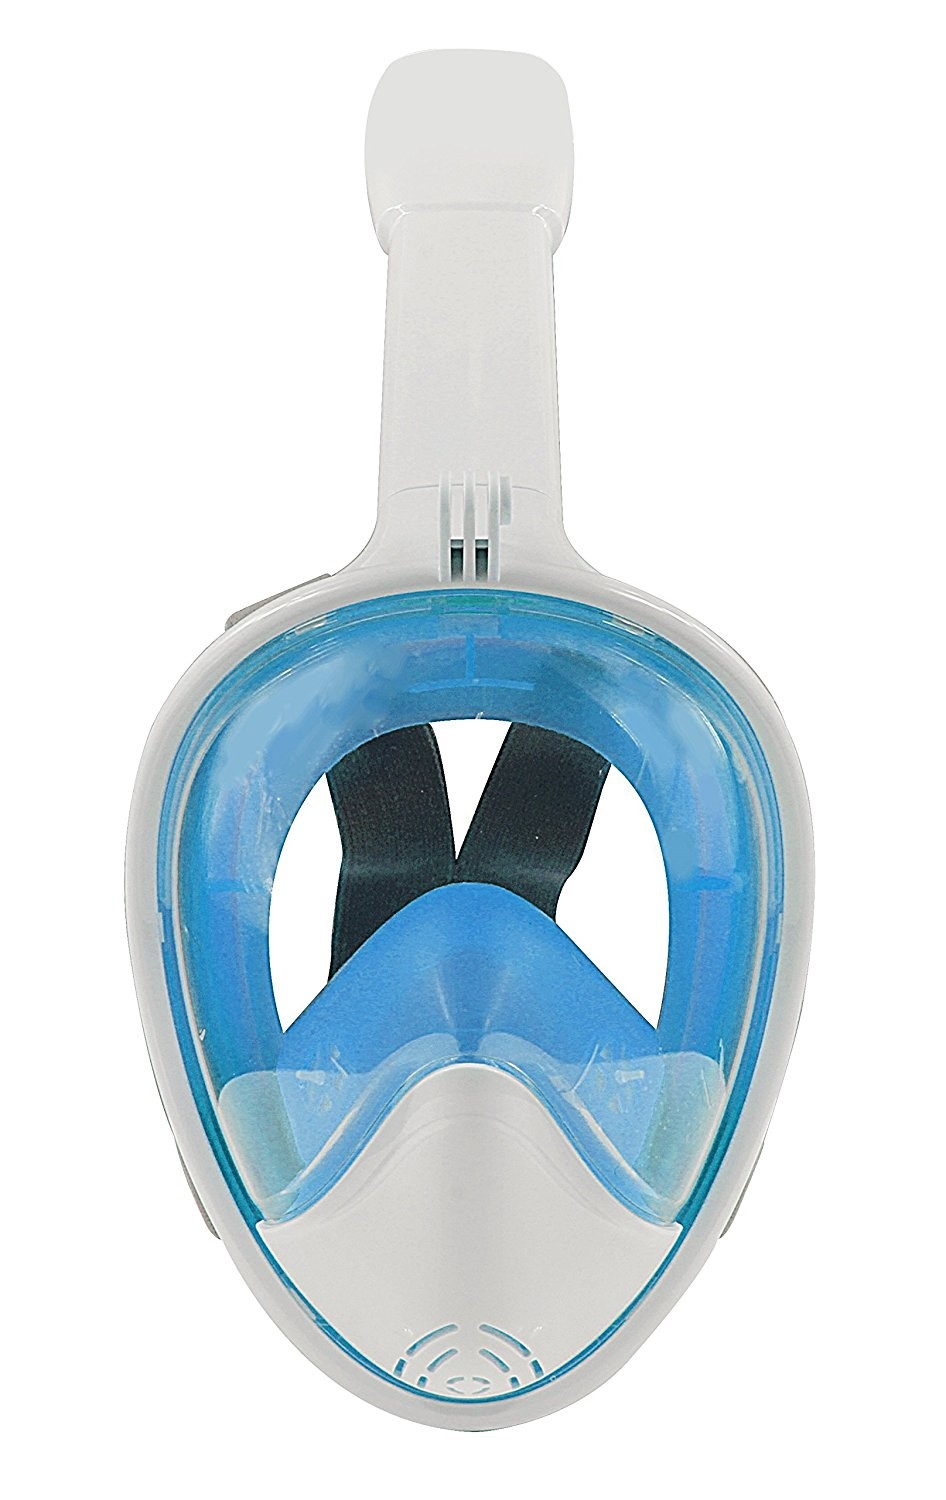 180 Degree Scuba diving equipment full face snorkel mask with gopro mount